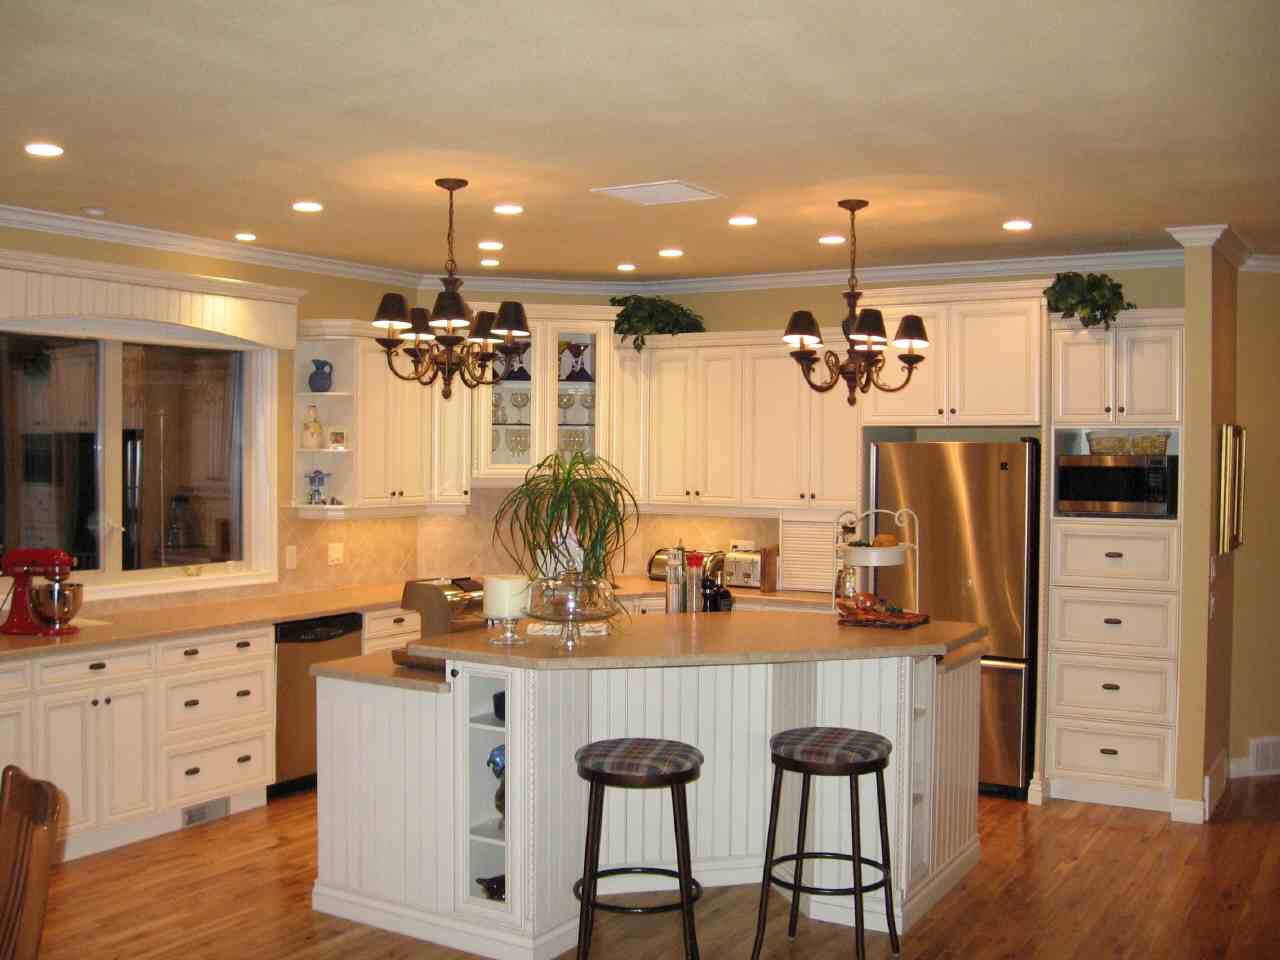 Contemporary kitchen counter stools photo - 3